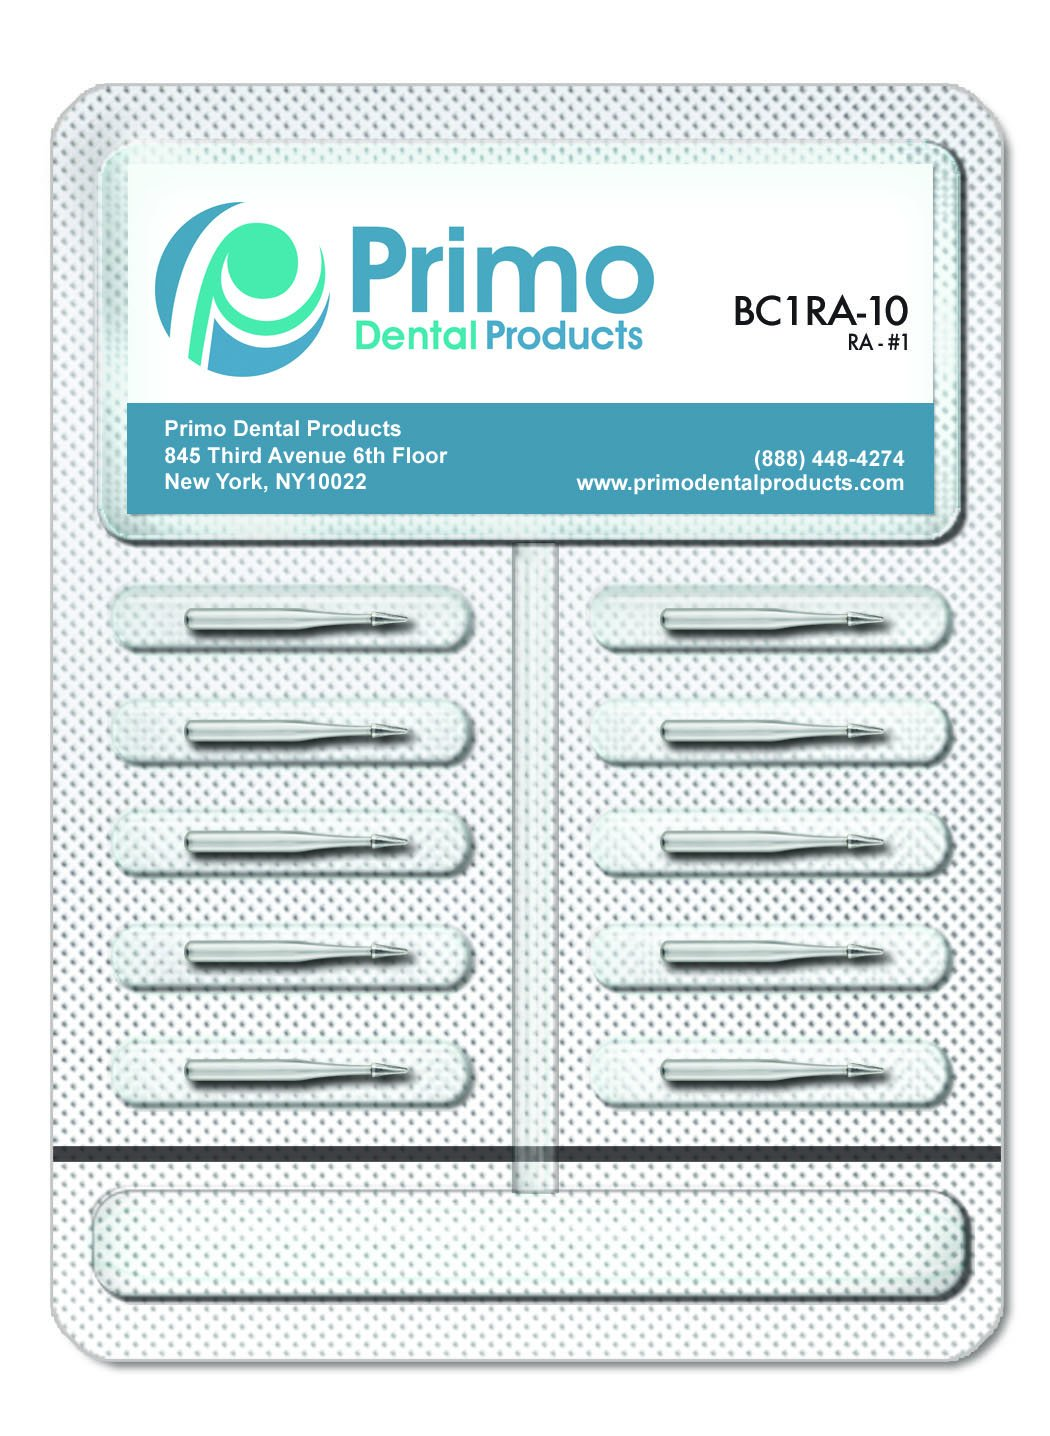 Primo Dental Products BC957FG10 Carbide Burs, 957 FG (Pack of 10)